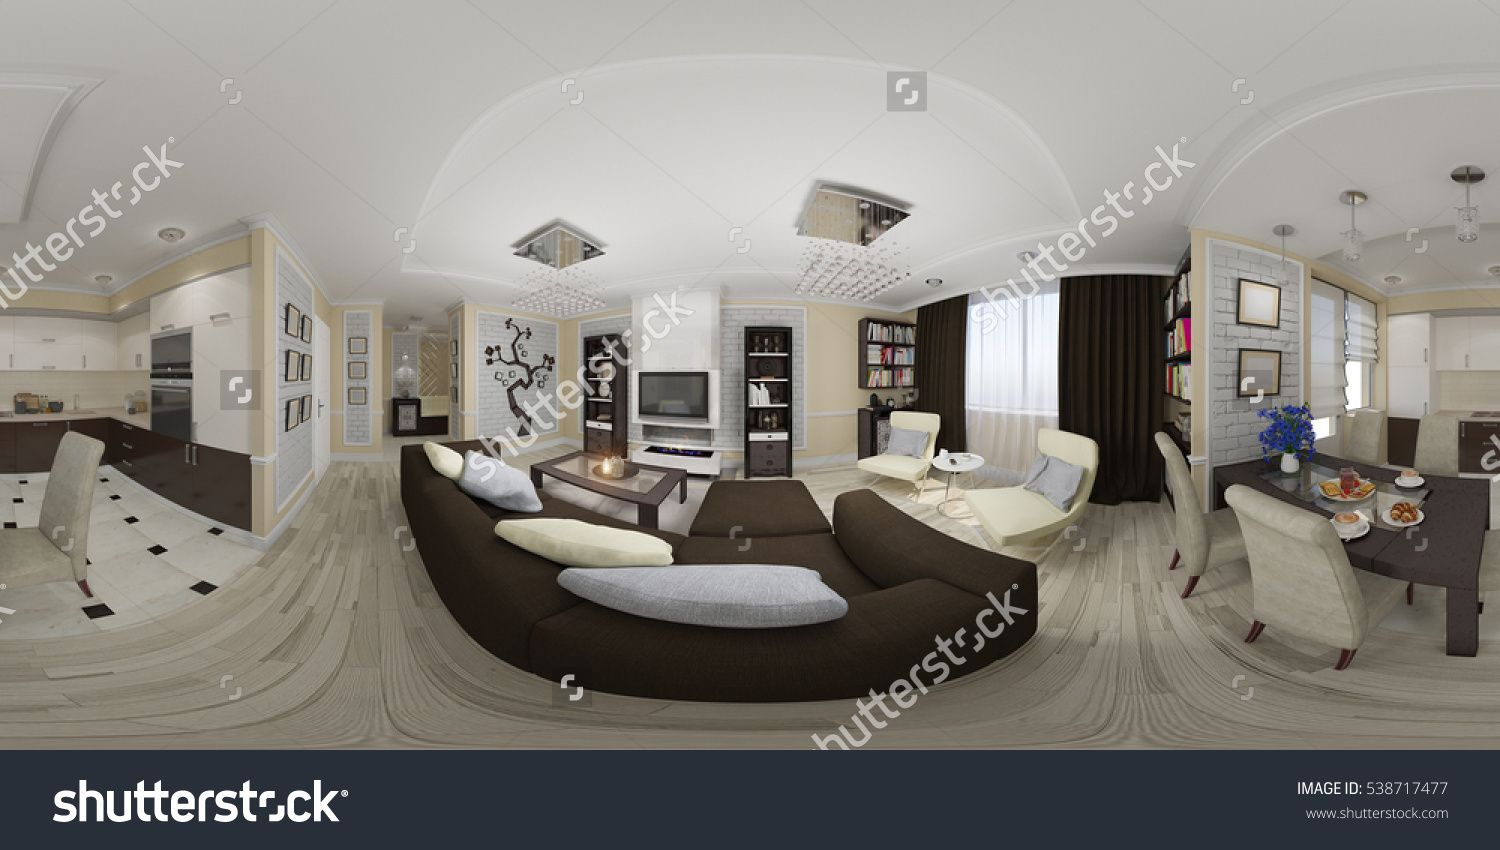 3d Illustration Spherical 360 Degrees Seamless Panorama Of Living